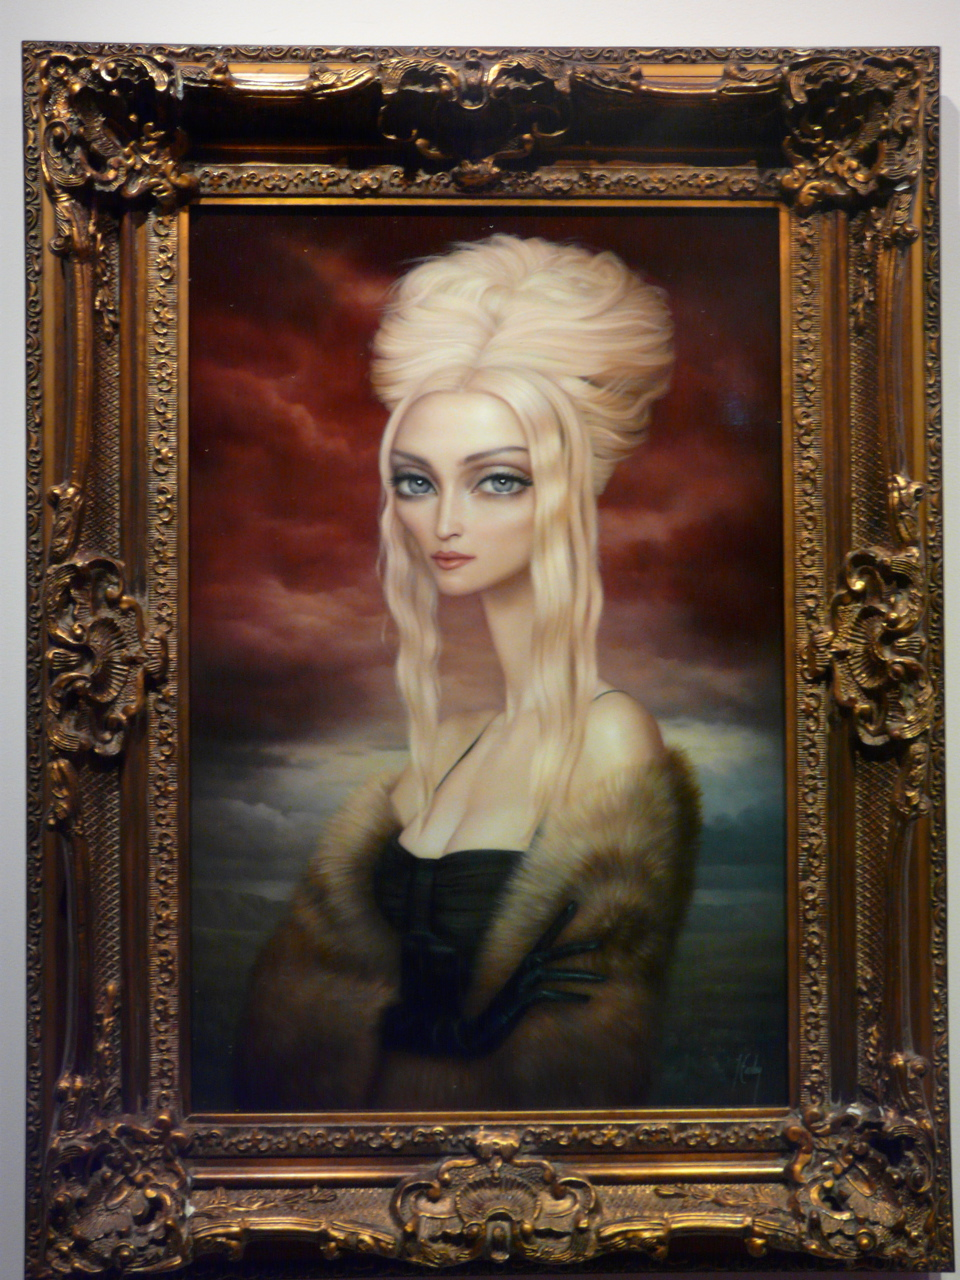 One of the show stoppers - Lori Earley x Madonna